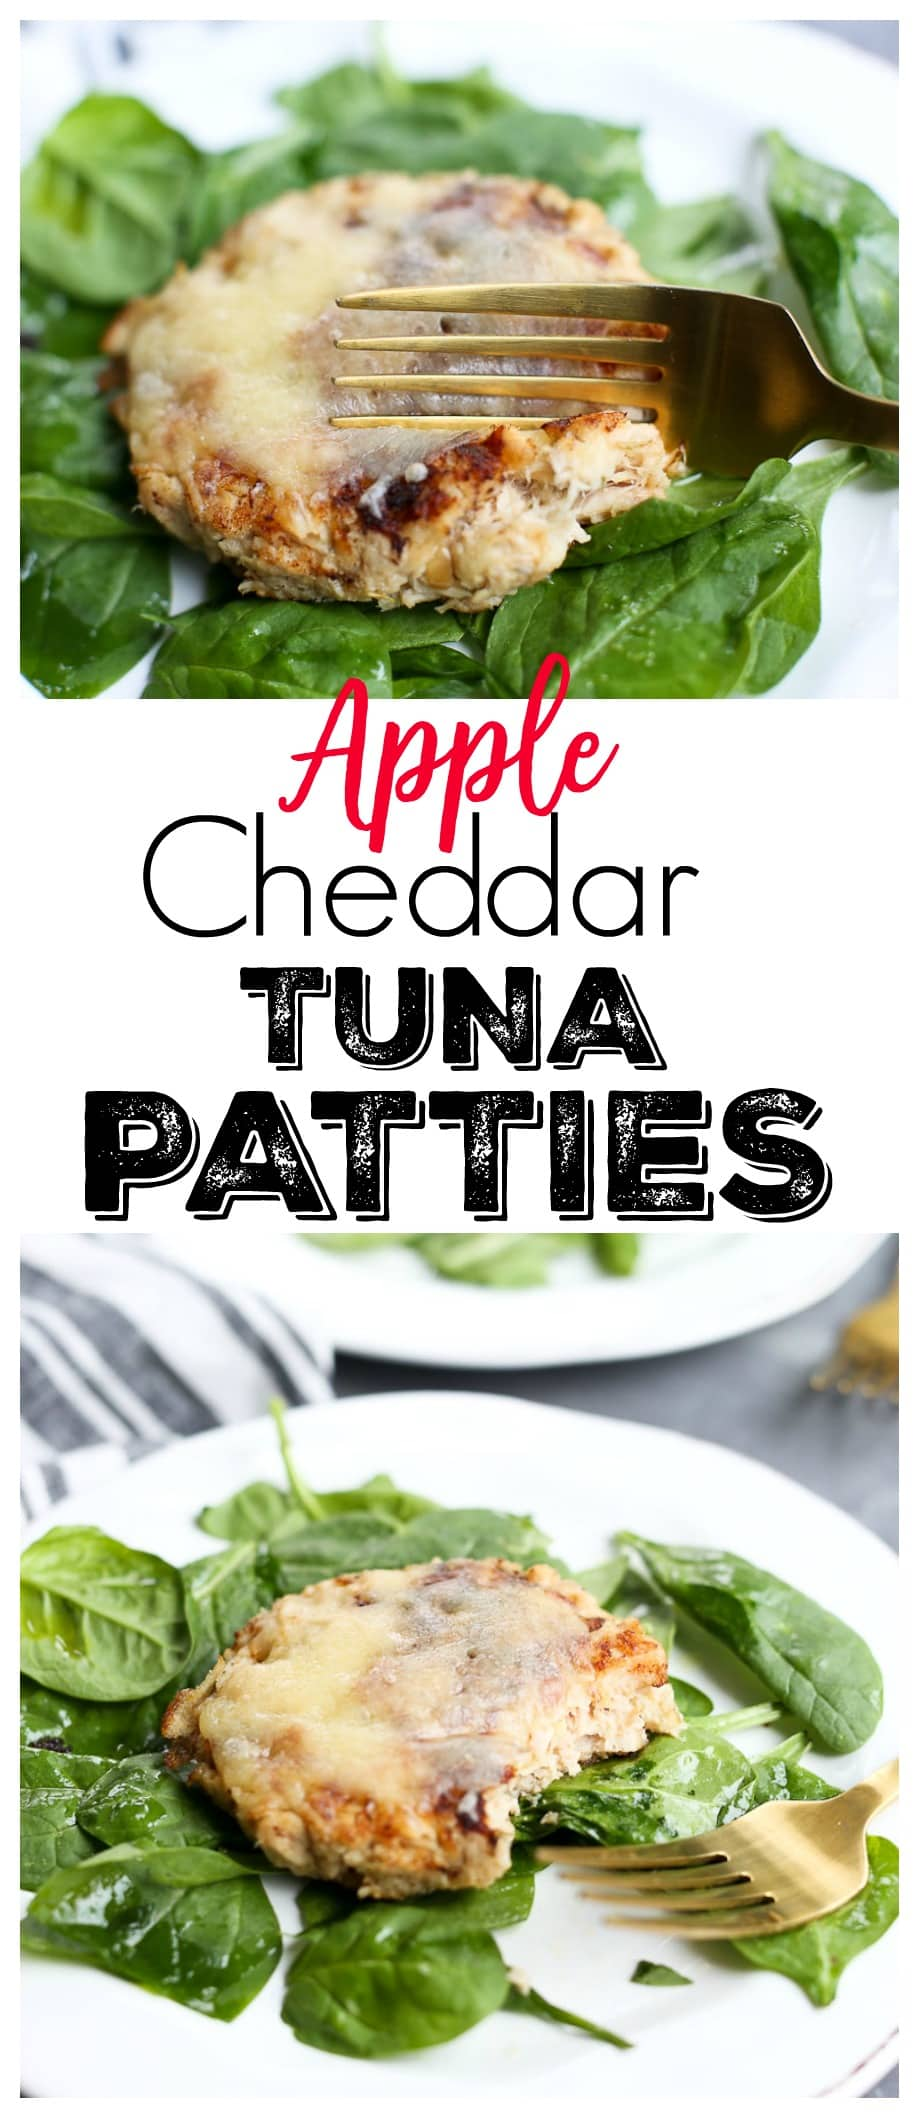 Apple Cheddar Tuna Patties Recipe healthy low carb lunch or dinner idea